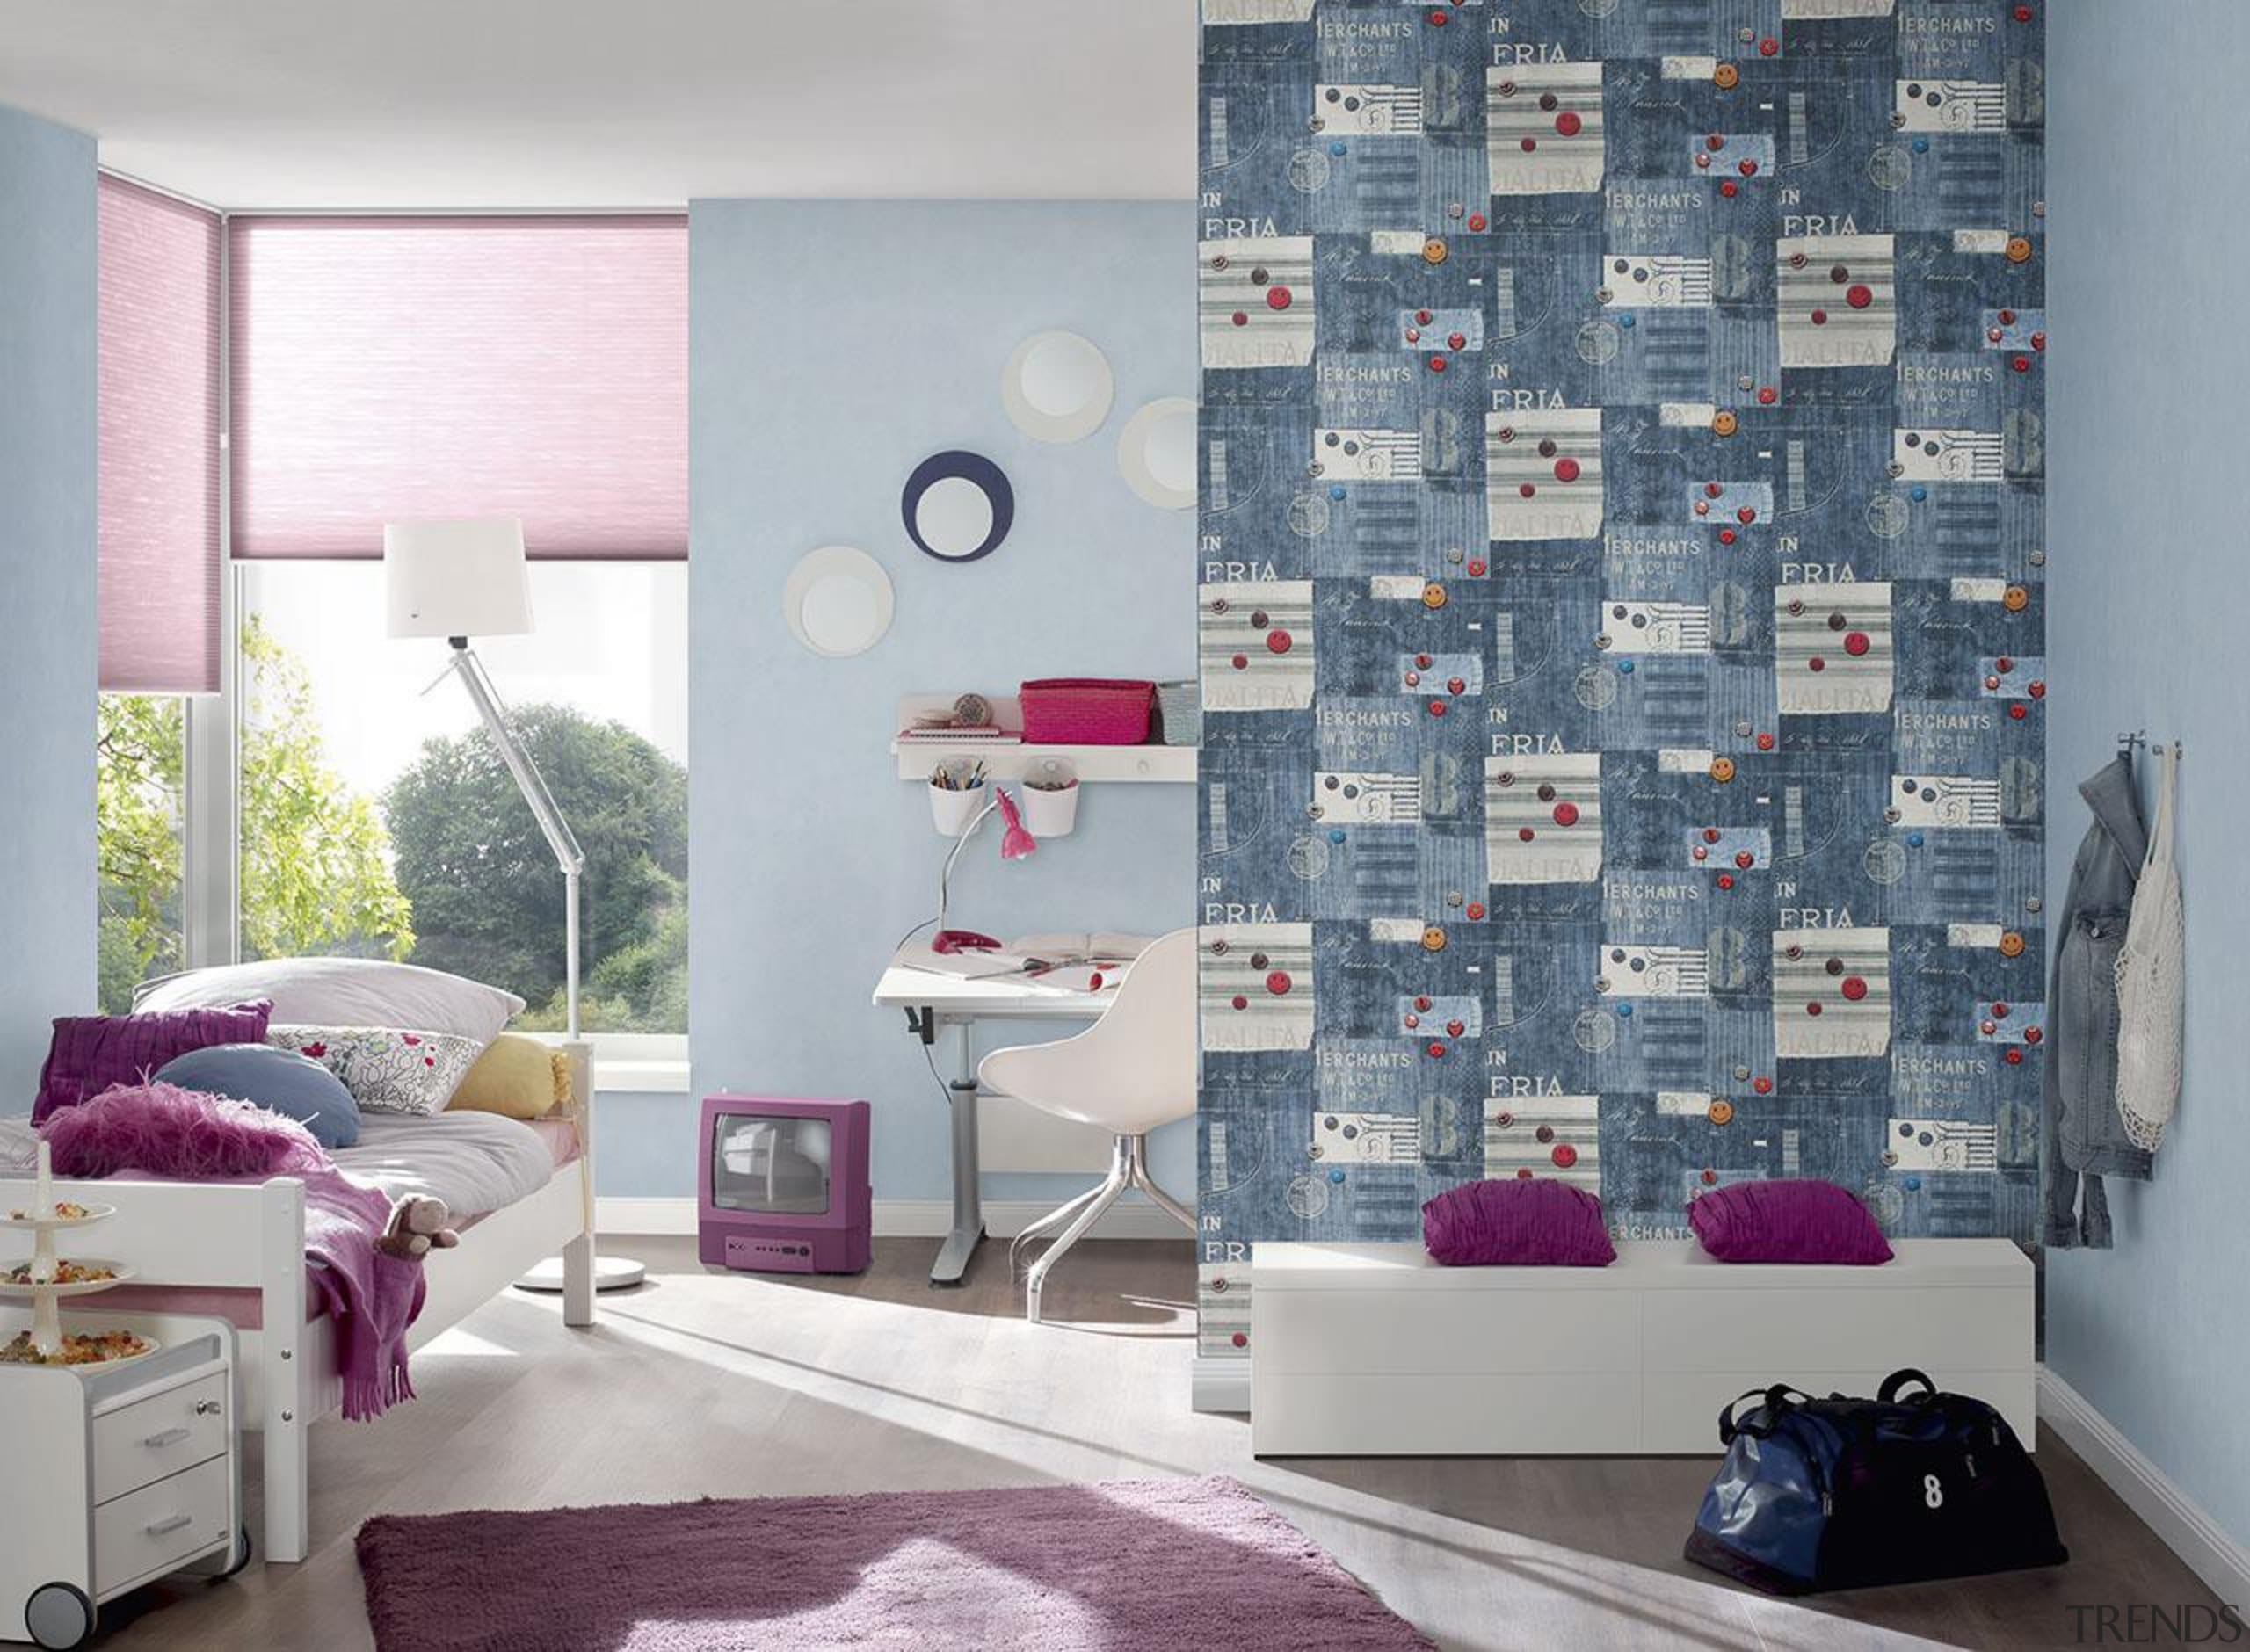 The new Boys and Girls Collection is a bed sheet, curtain, floor, home, interior design, living room, purple, room, textile, wall, wallpaper, window, window covering, window treatment, gray